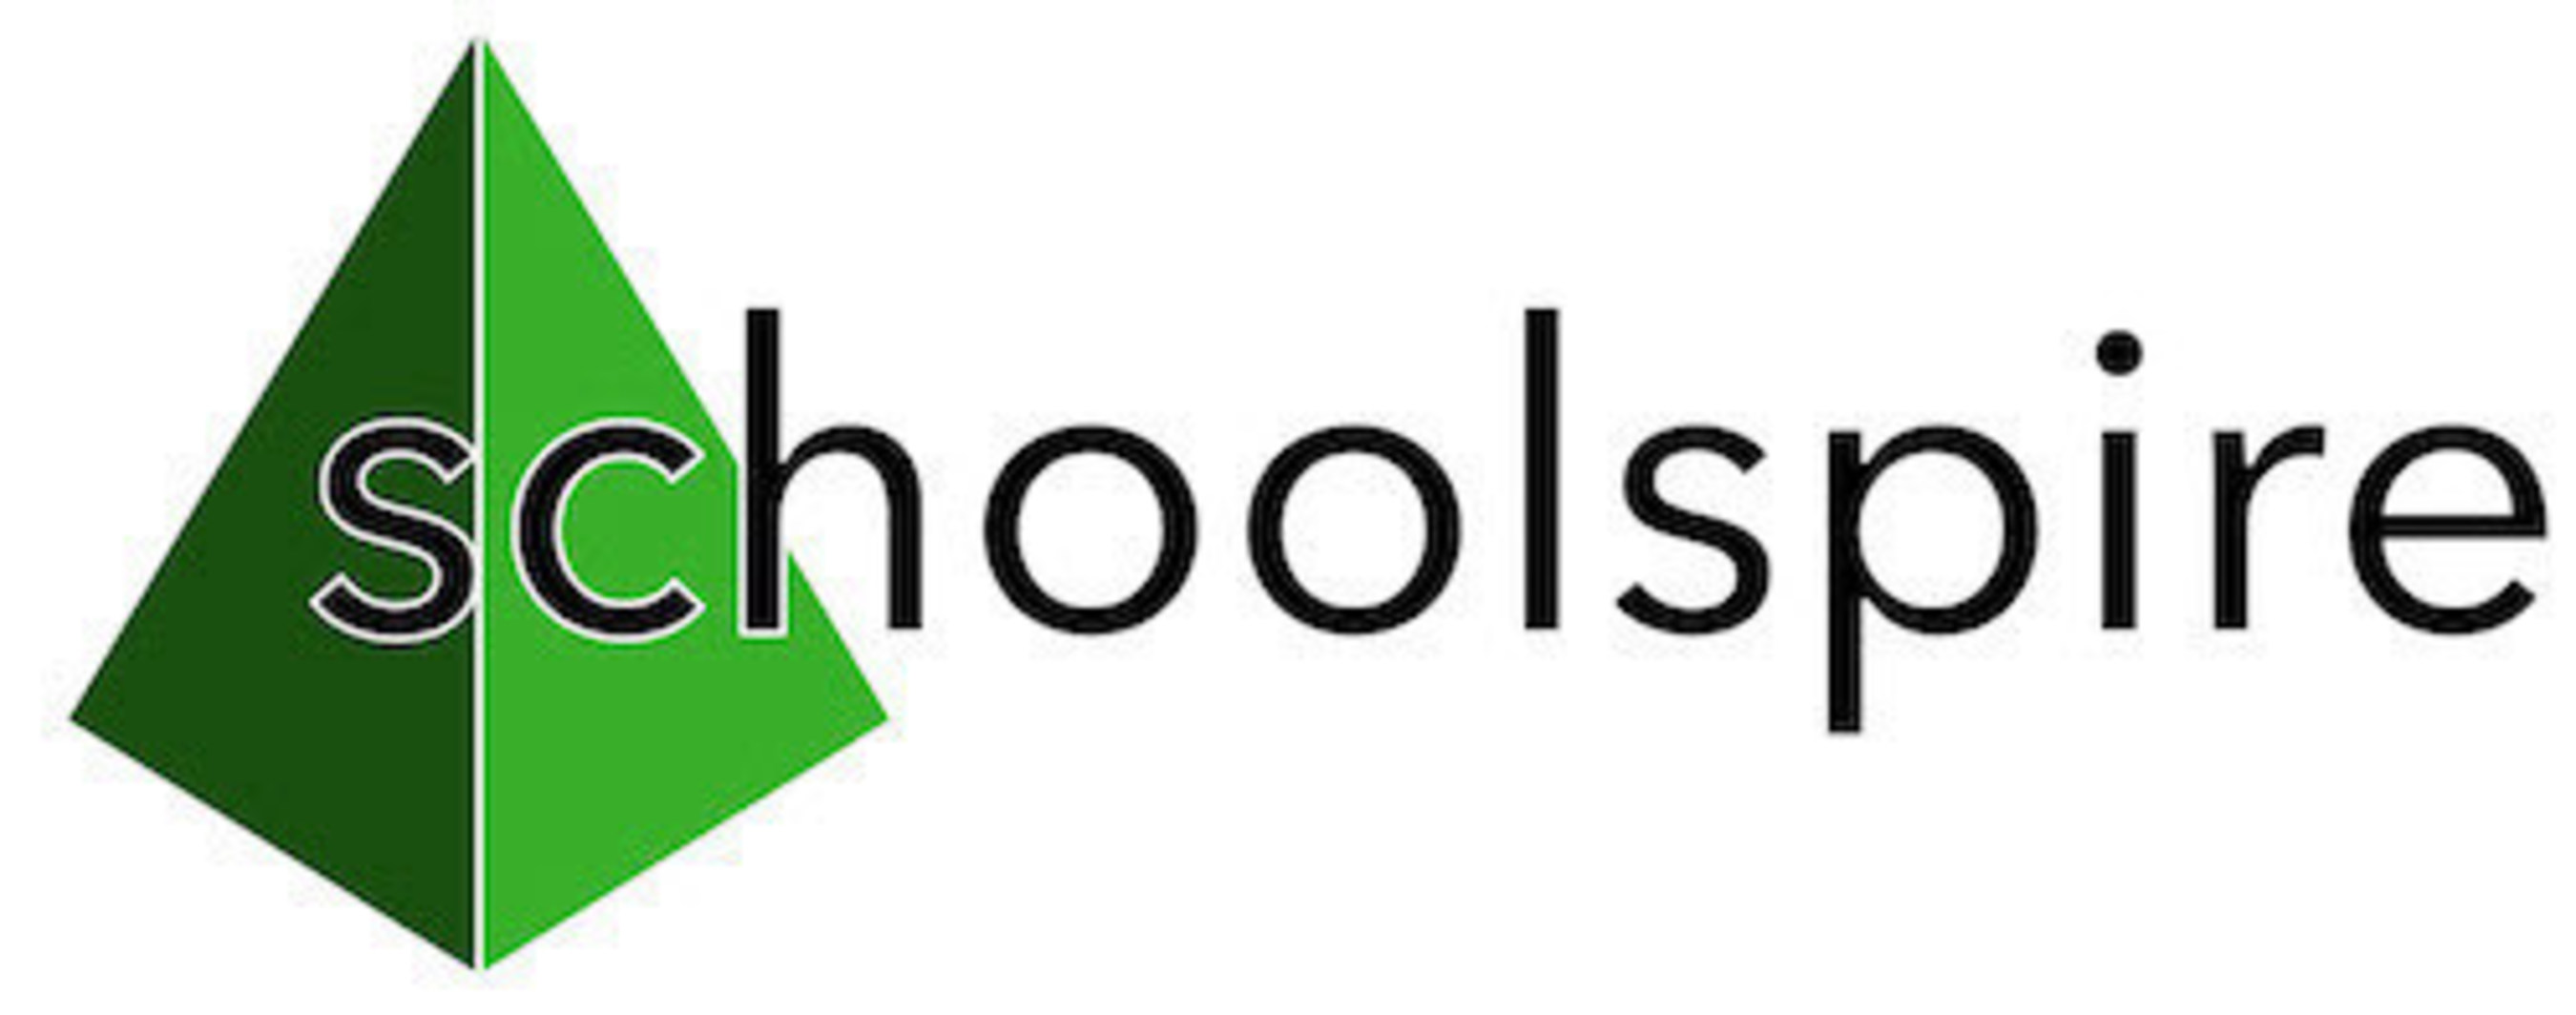 School Spire Acquires Instructional Management System, EdPlan IMS